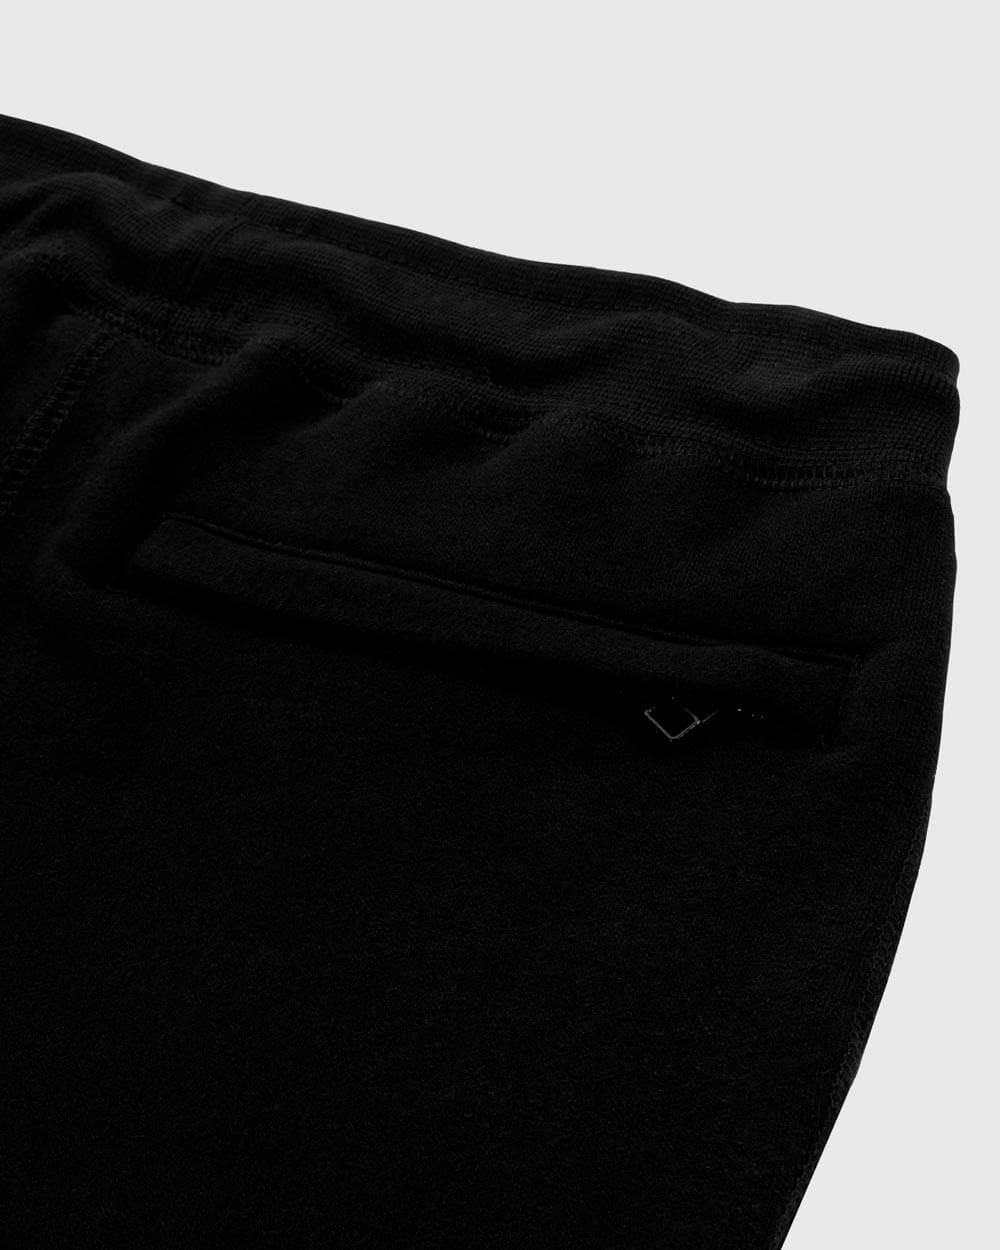 MID-WEIGHT FRENCH TERRY SHORT - BLACK